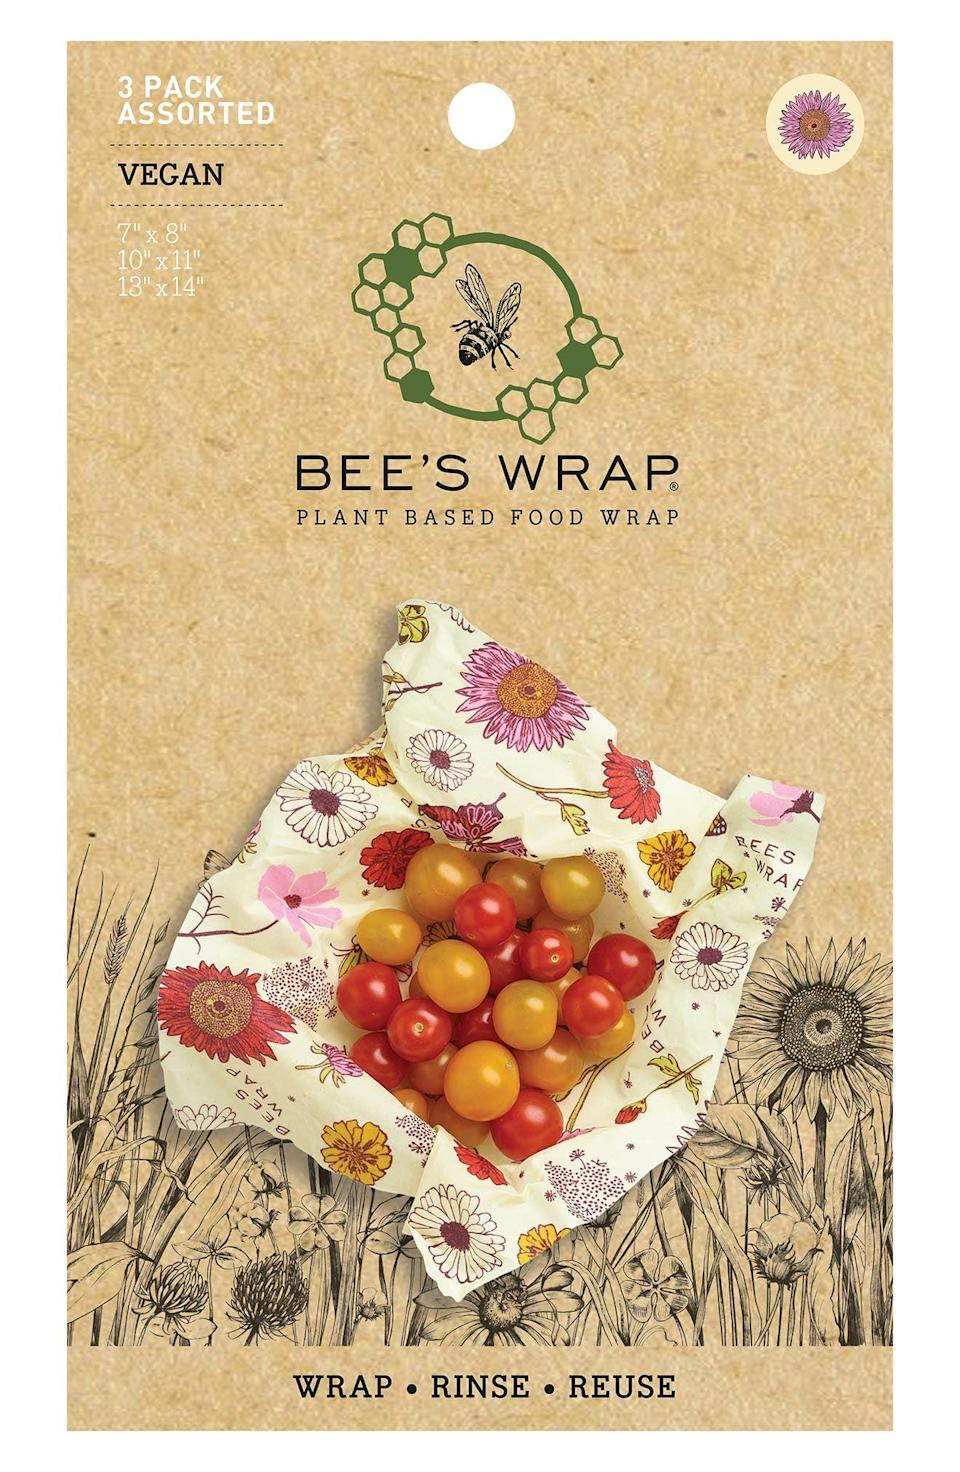 """<p><strong>Bee's Wrap</strong></p><p>nordstrom.com</p><p><strong>$19.00</strong></p><p><a href=""""https://go.redirectingat.com?id=74968X1596630&url=https%3A%2F%2Fwww.nordstrom.com%2Fs%2Fbees-wrap-assorted-3-pack-reusable-vegan-food-wraps%2F5785184&sref=https%3A%2F%2Fwww.seventeen.com%2Flife%2Ffriends-family%2Fg722%2Fbest-holiday-gifts-for-mom%2F"""" rel=""""nofollow noopener"""" target=""""_blank"""" data-ylk=""""slk:Shop Now"""" class=""""link rapid-noclick-resp"""">Shop Now</a></p><p>Skip the saran wrap and tinfoil. Save those holiday leftovers in this (really cute) reusable beeswax wrap. </p>"""